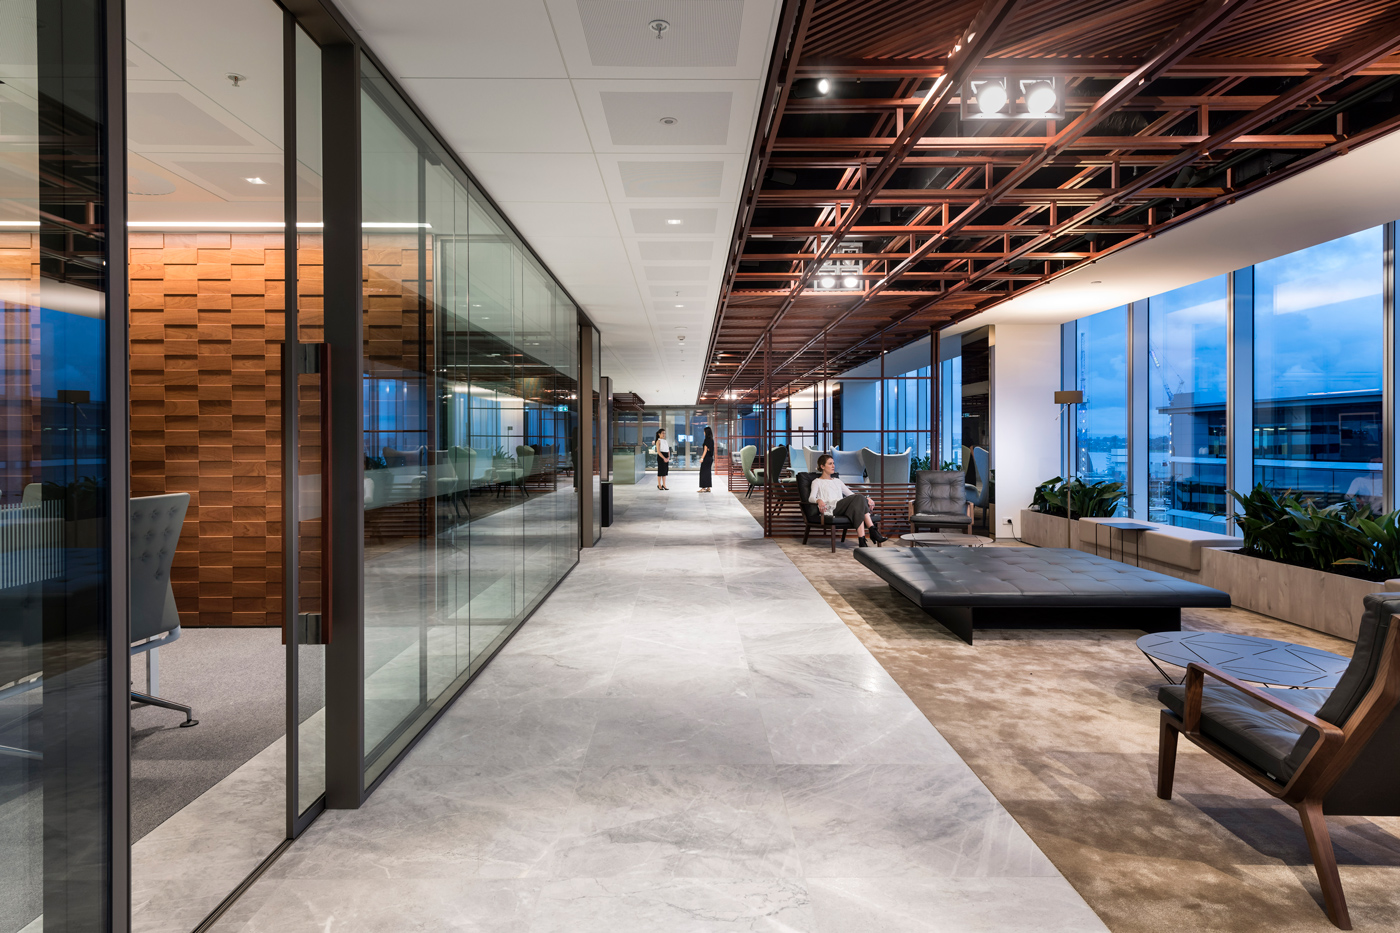 jeb_group-partitions-x-series-westpac-office-au-04.jpg